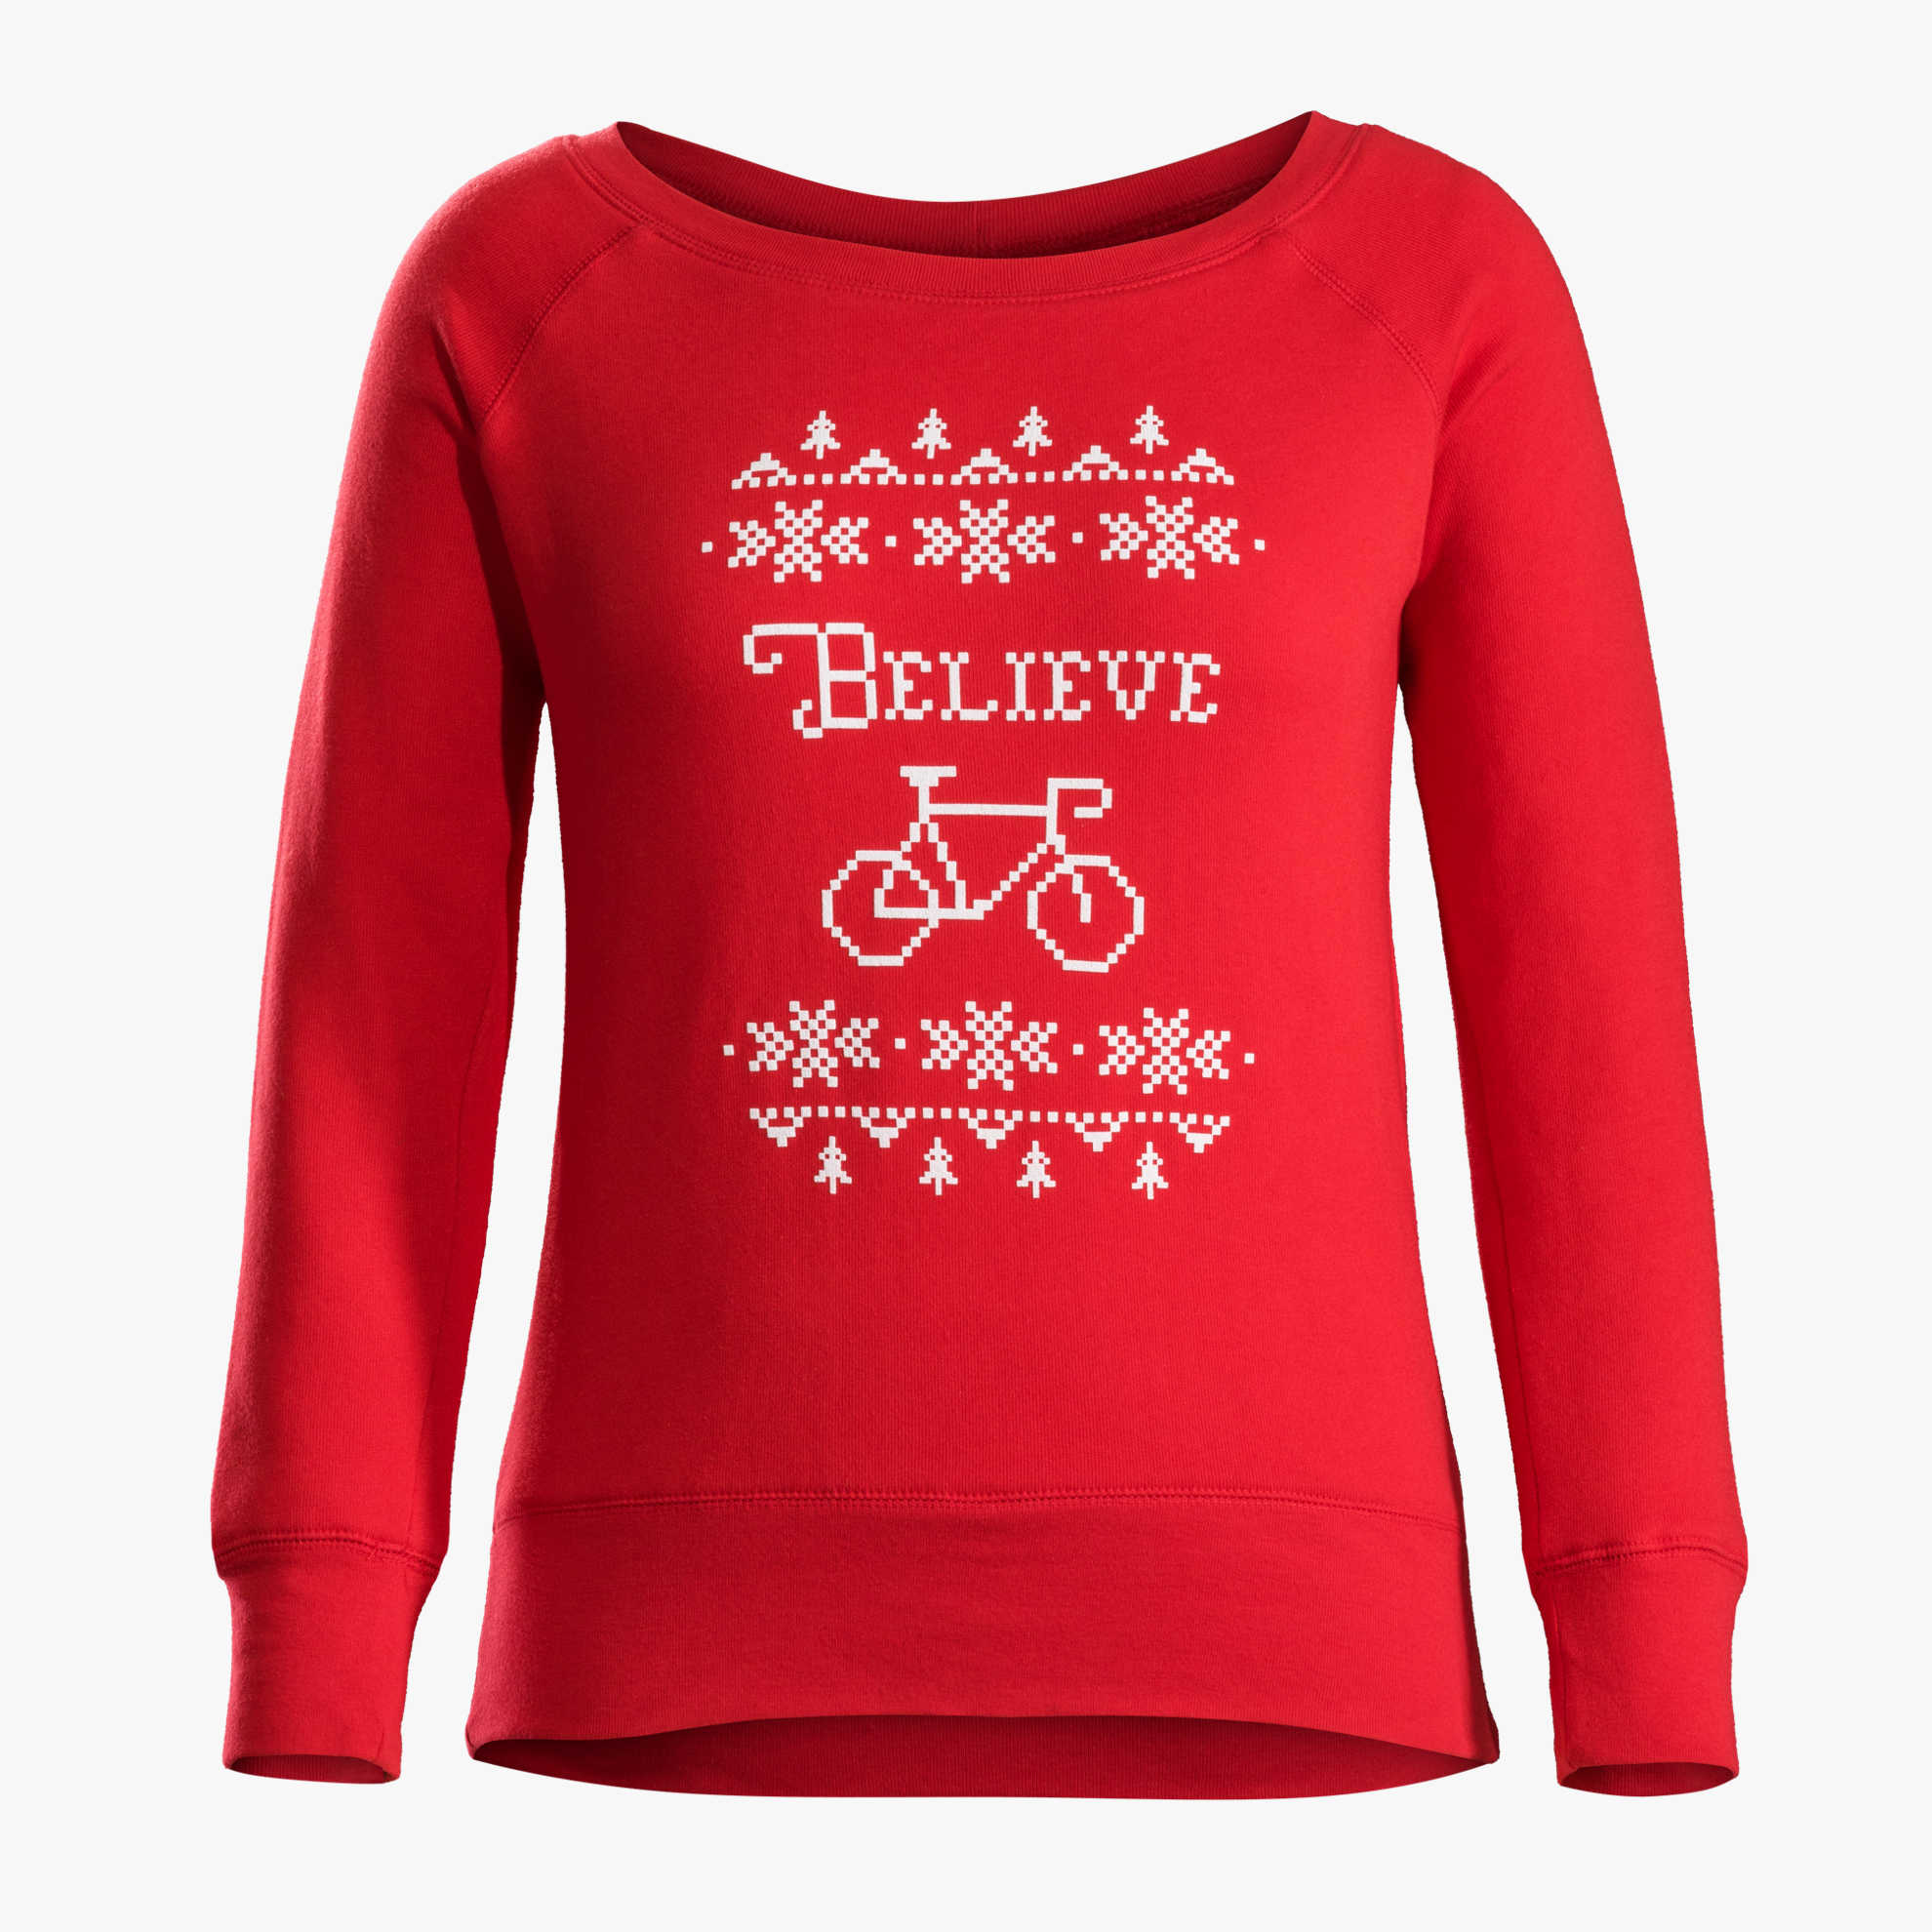 Bontrager Women's Holiday Sweatshirt  Because everyone has a holiday party.  (Price: $39.99, Purchase    here   )